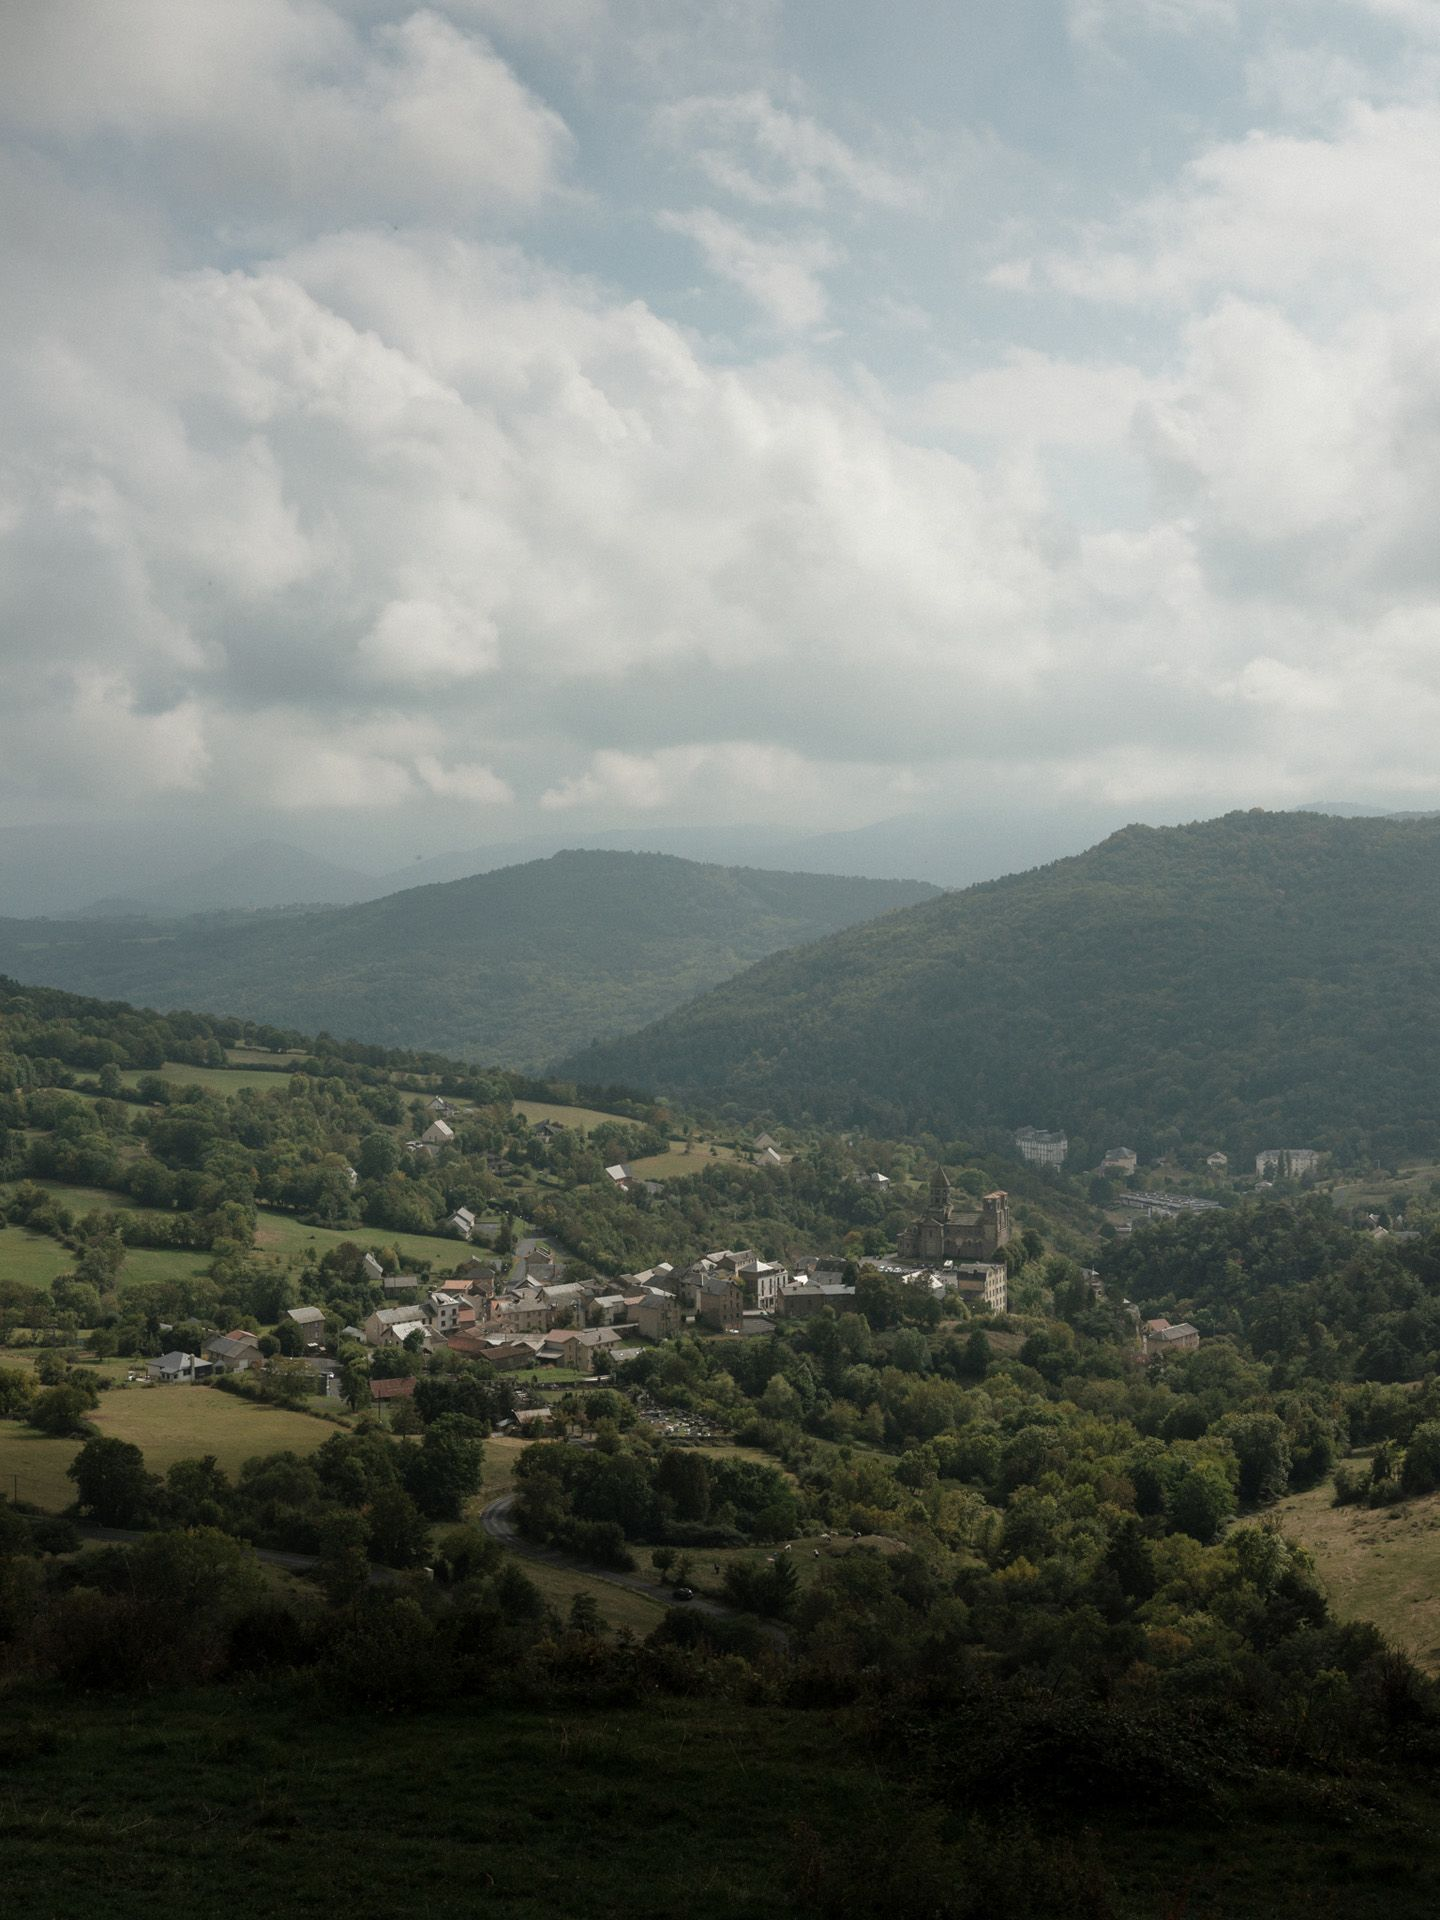 high view of french little town of Auvergne by Alexi Hobbs in Auvergne for Reflets de France